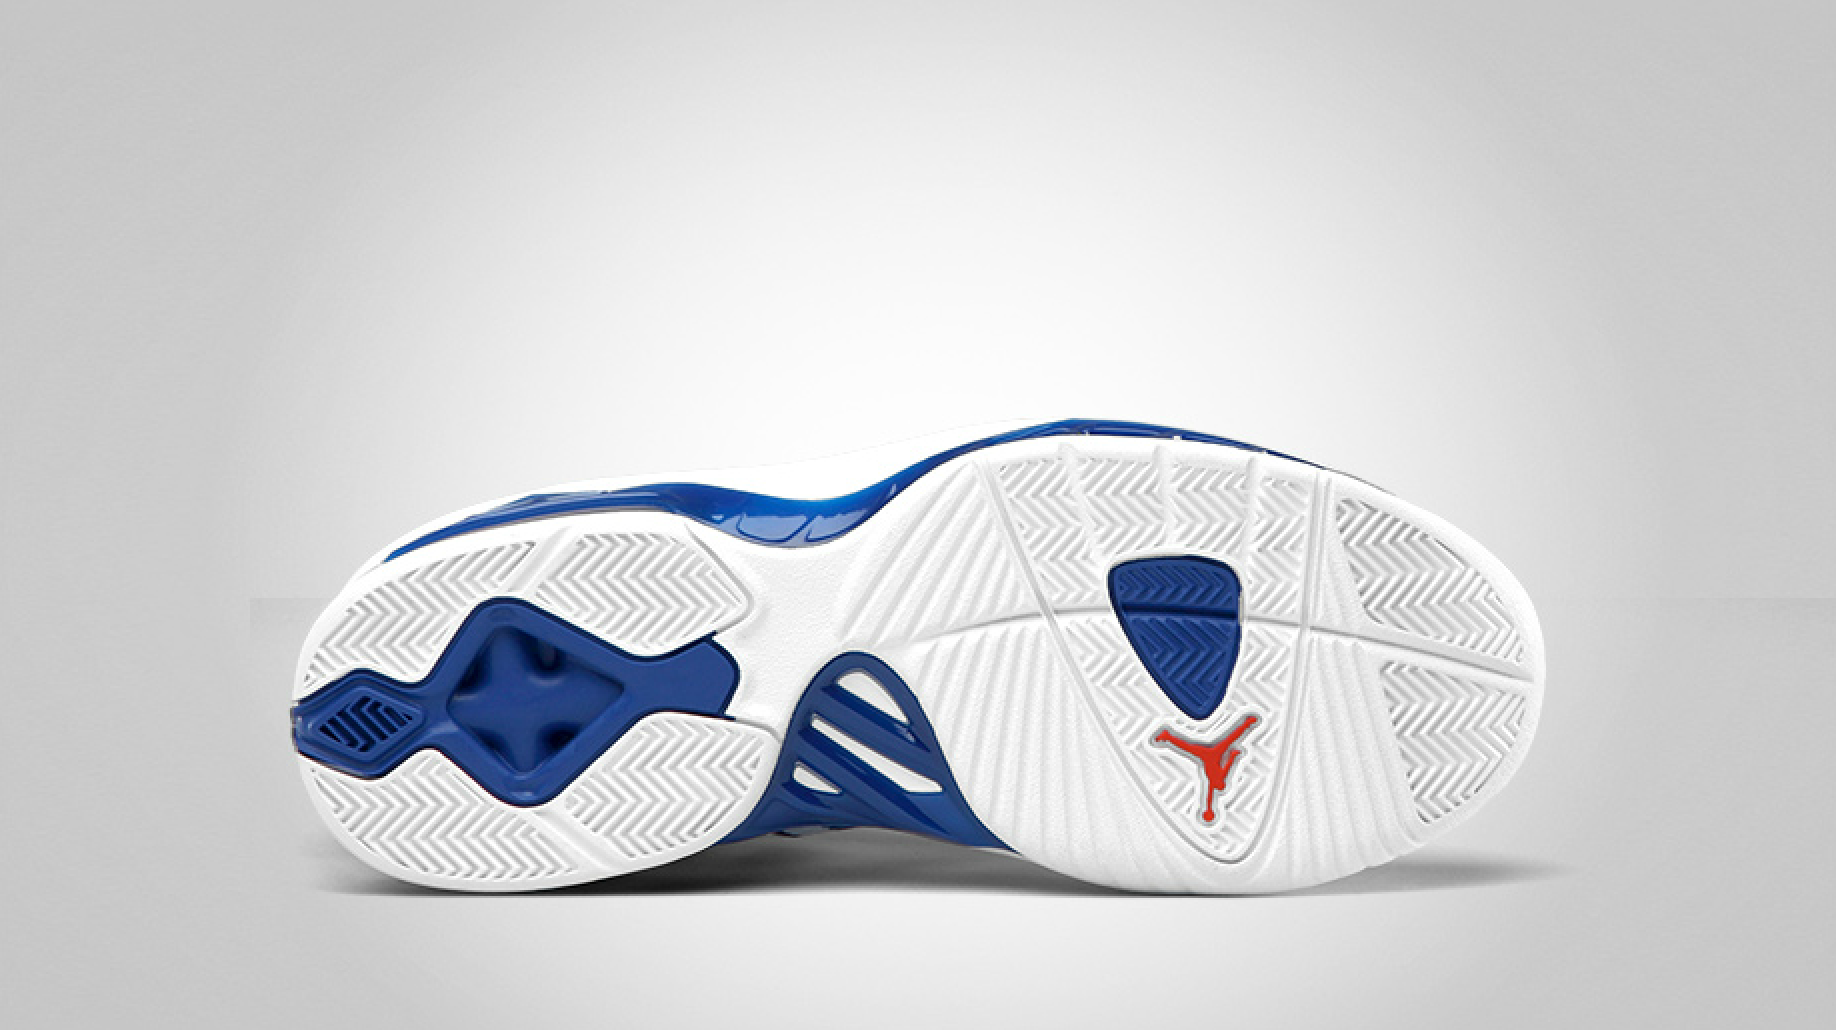 new arrival a4187 66fdd Jordan Melo M8 Advance  Home  - Official Images